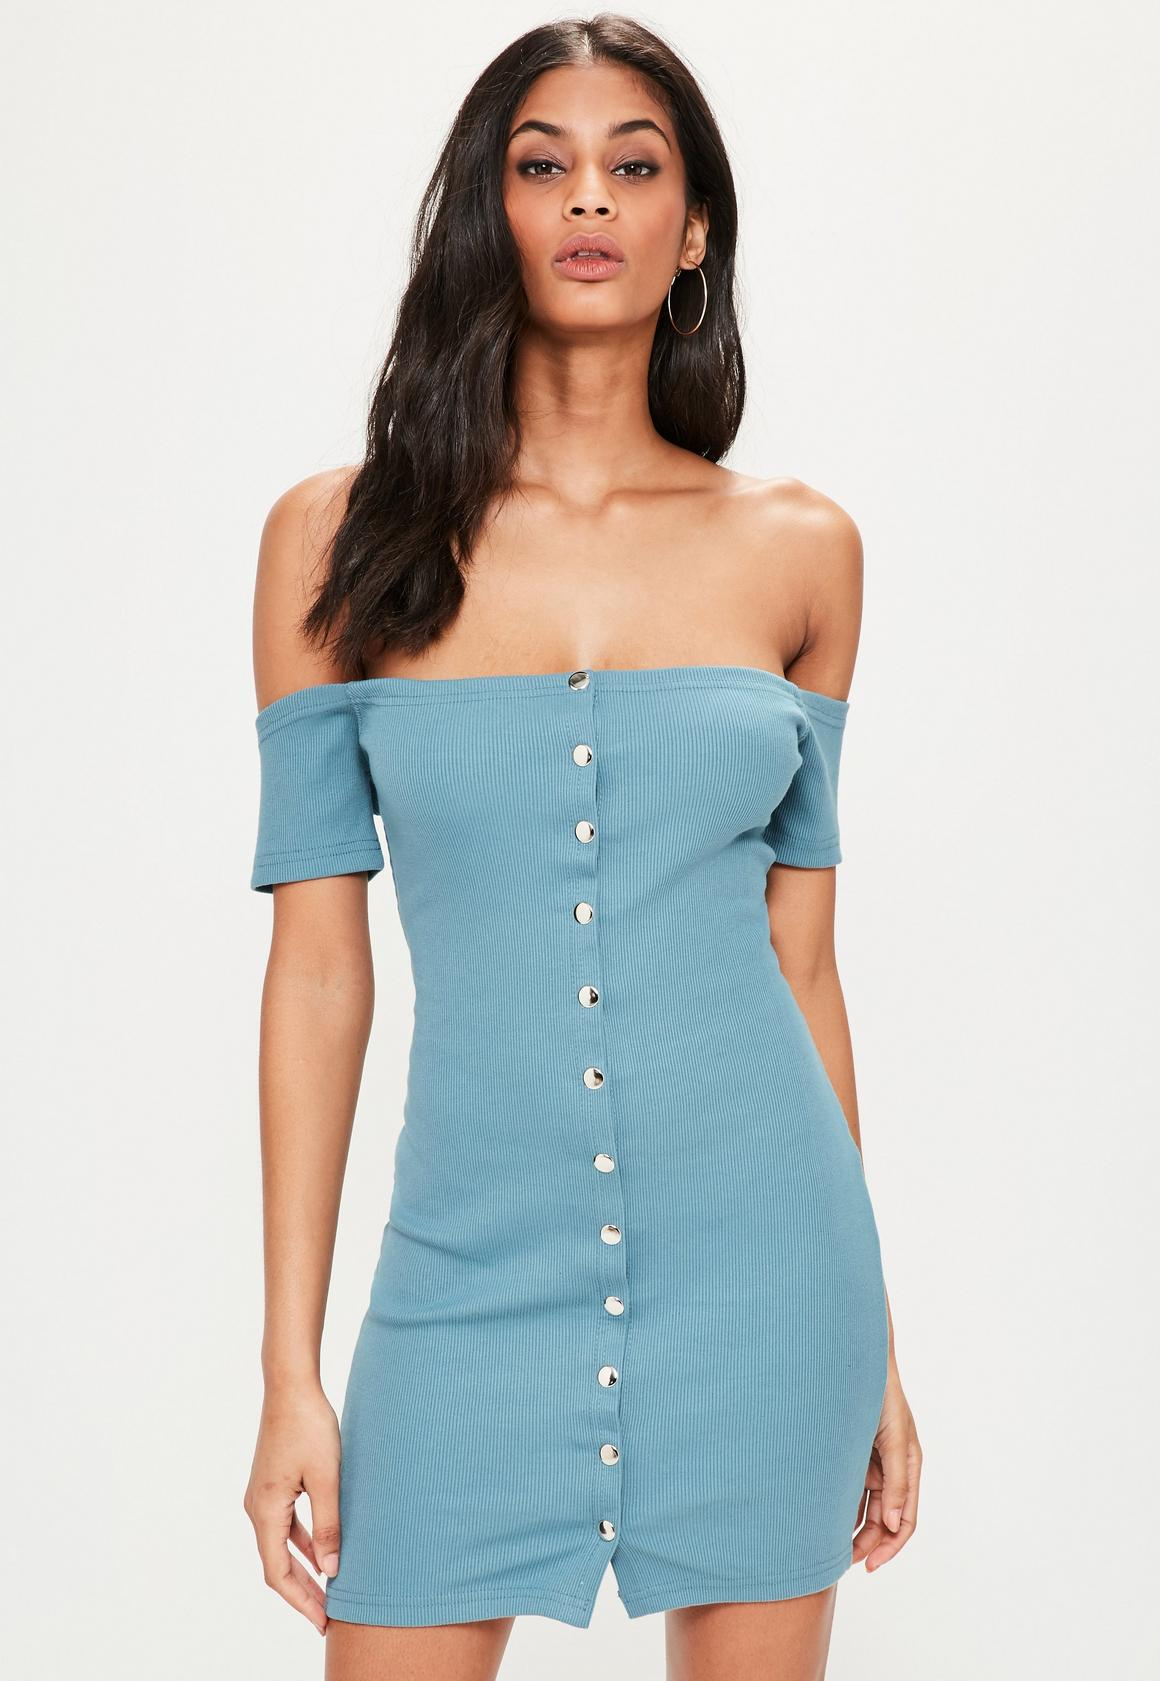 Blue Stud Popper Detail Bardot Bodycon Dress | Missguided